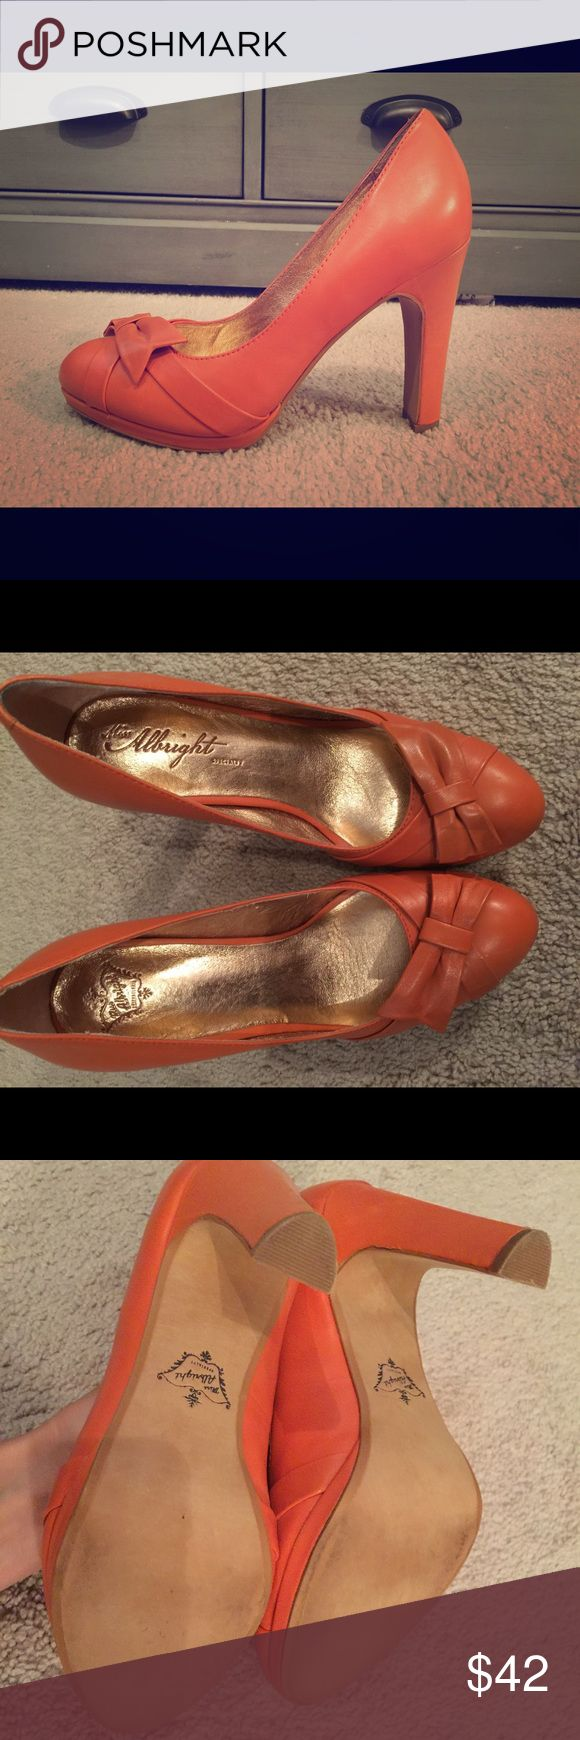 New, Anthropologie, women's pumps, size 7 These adorable orange, leather pumps from Anthropologie, have never been worn and are perfect for the fall!  The insoles are very soft and cushioned.  The cute bow adds a feminine touch. Shoes Heels